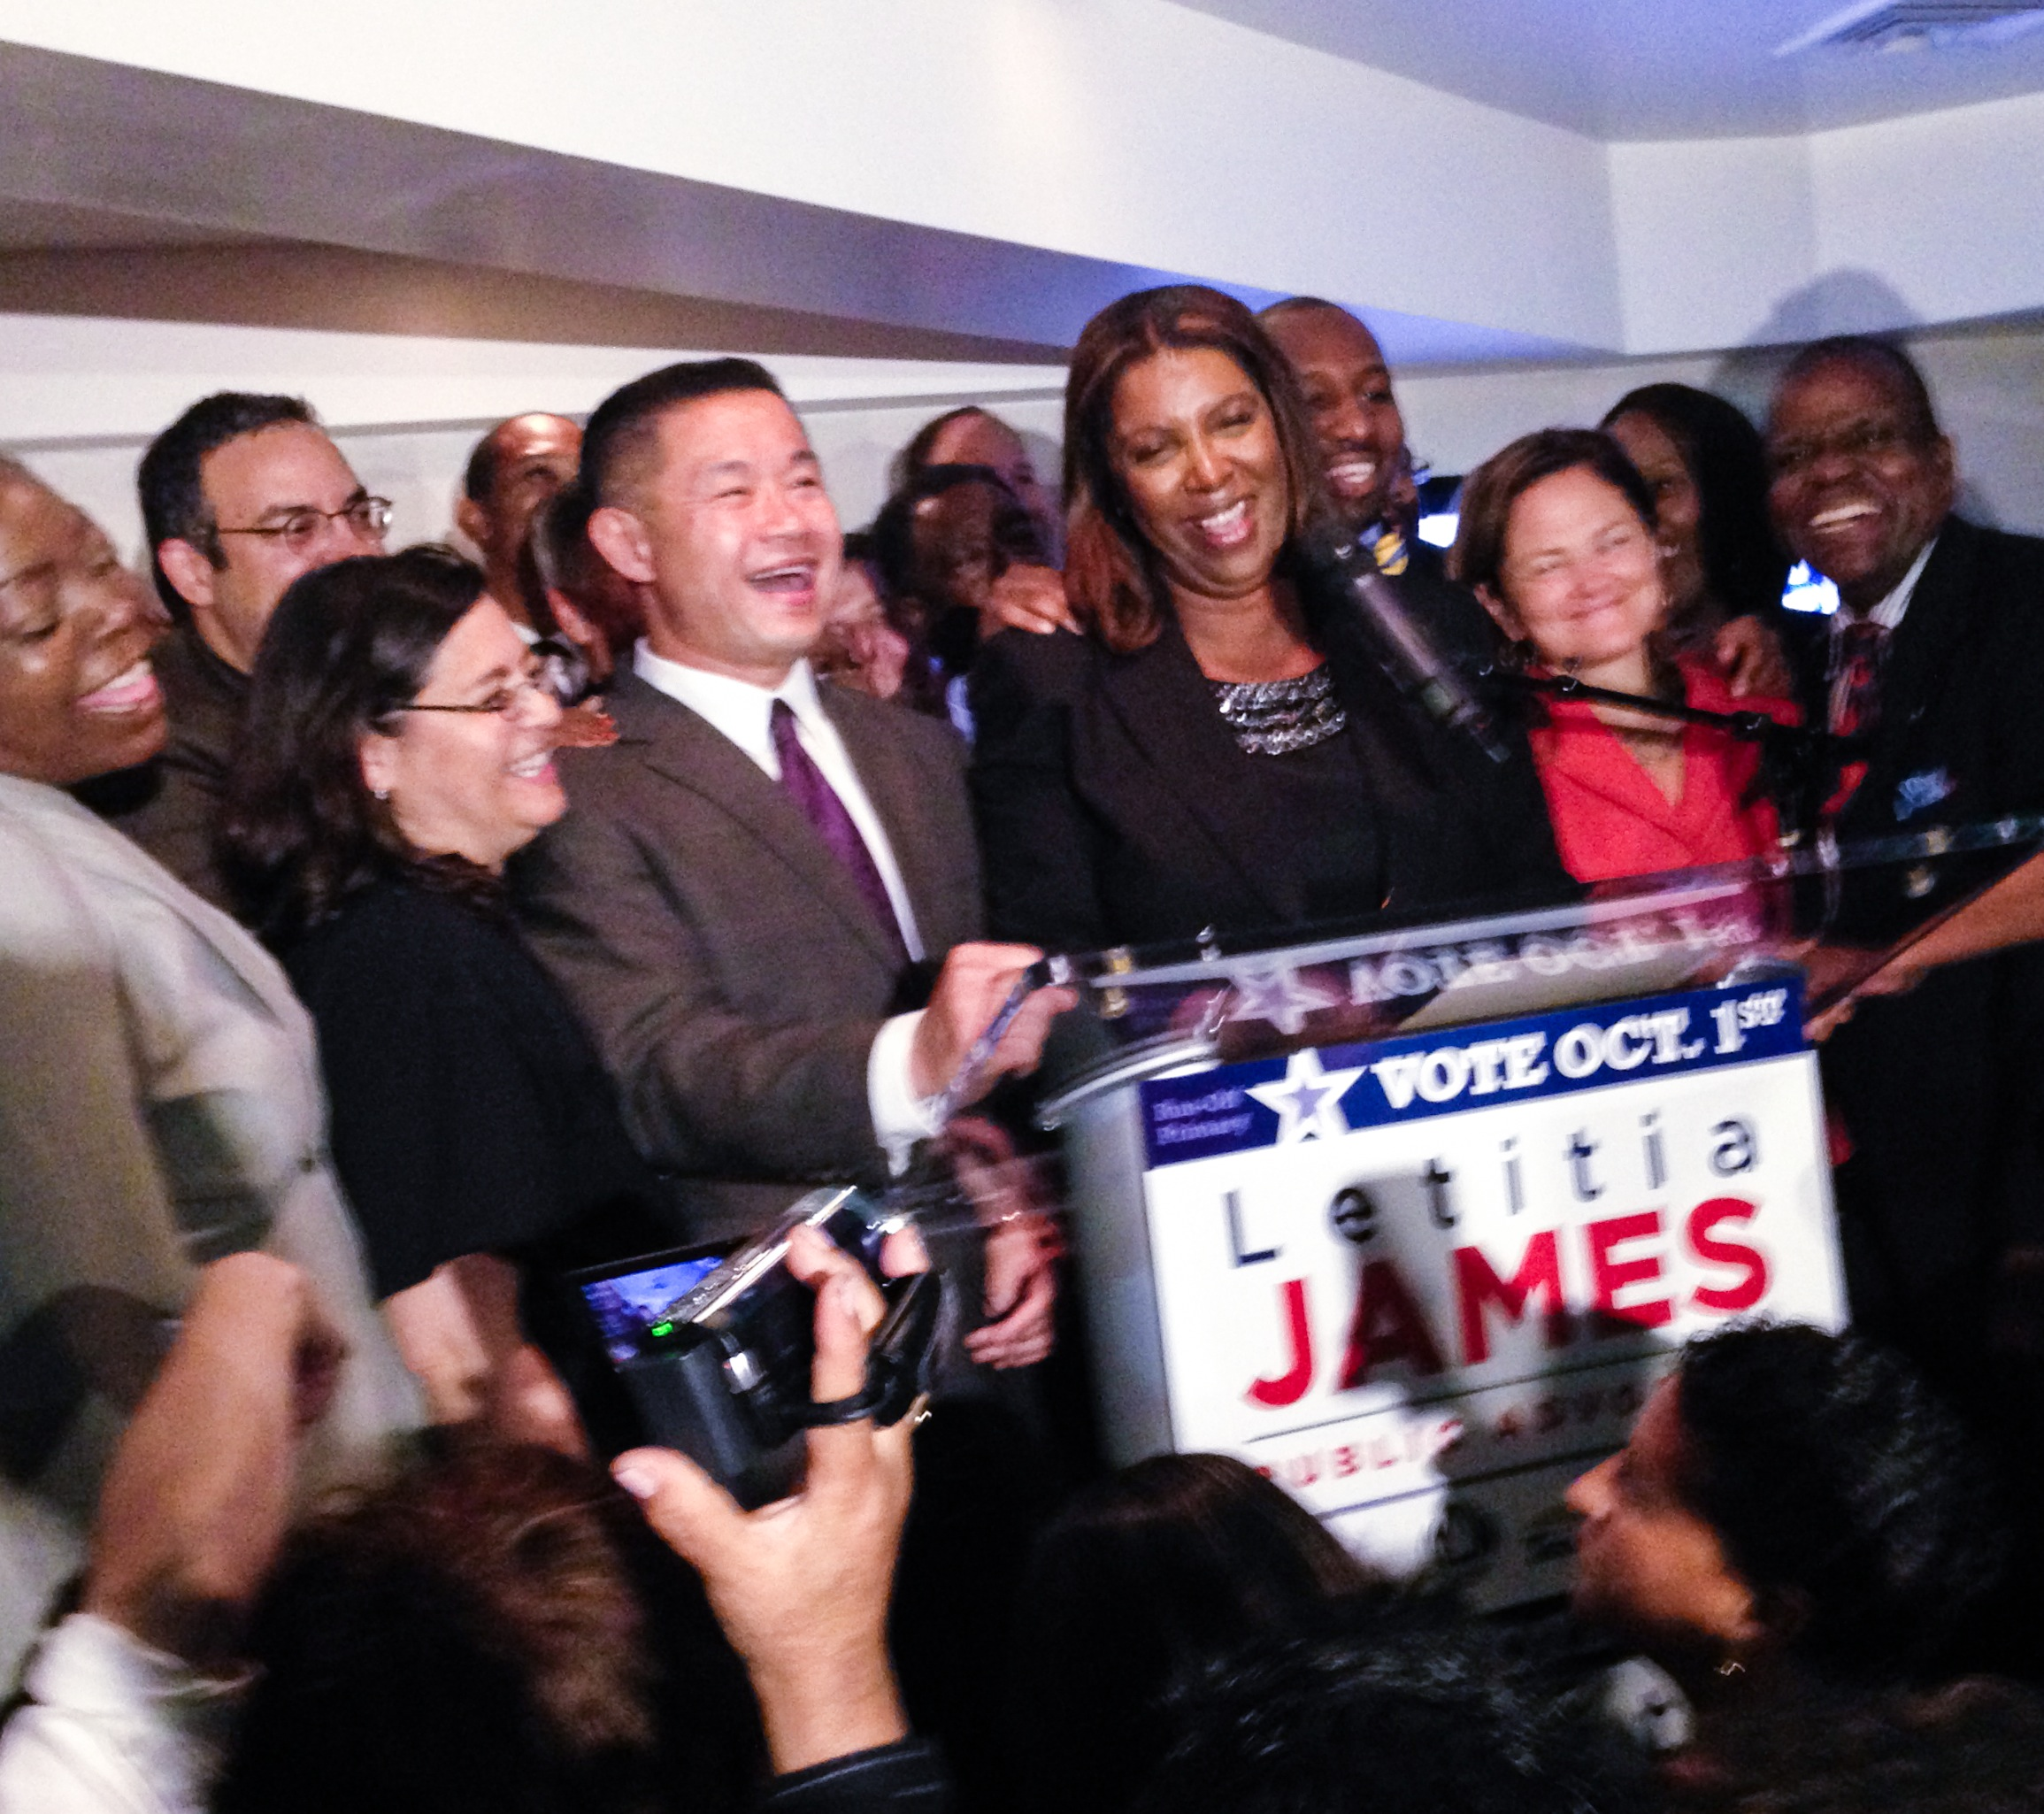 letitia-james-takes-public-advocate